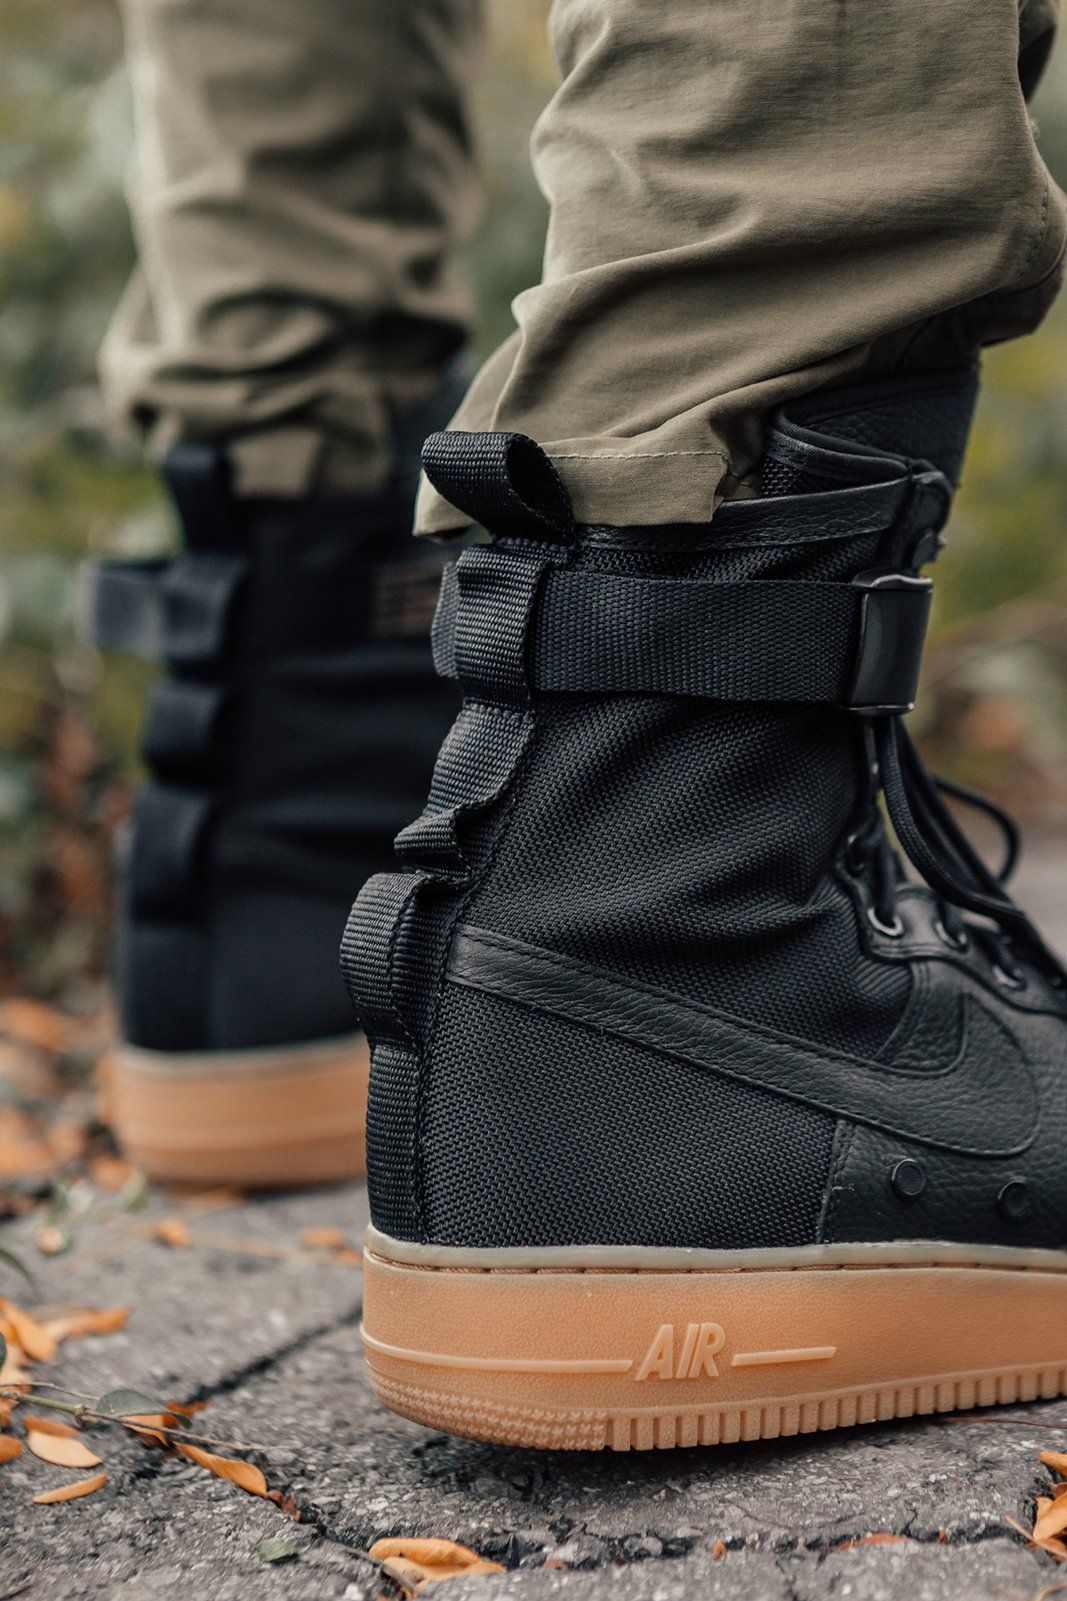 100% authentic 32582 1dca5 Kith partners with Nike to shoot an editorial to launch the all-new SF AF-1  collection. The Air Force 1 s classic design has been the foundation for a  ...